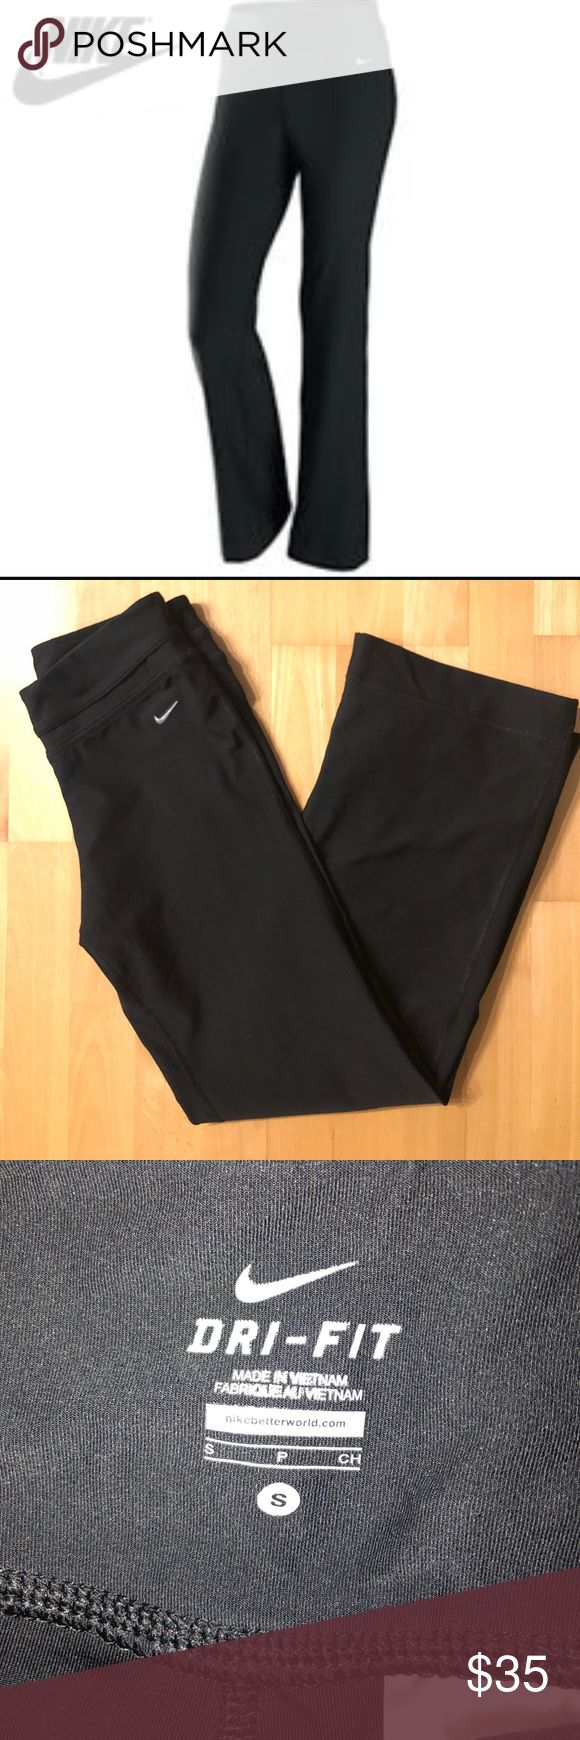 """Nike Be Strong Womens Training Pant dri-Fit Women's full length training pants in black. 14"""" waist, 32"""" inseam. Excellent preowned condition. Look like new Nike Pants"""